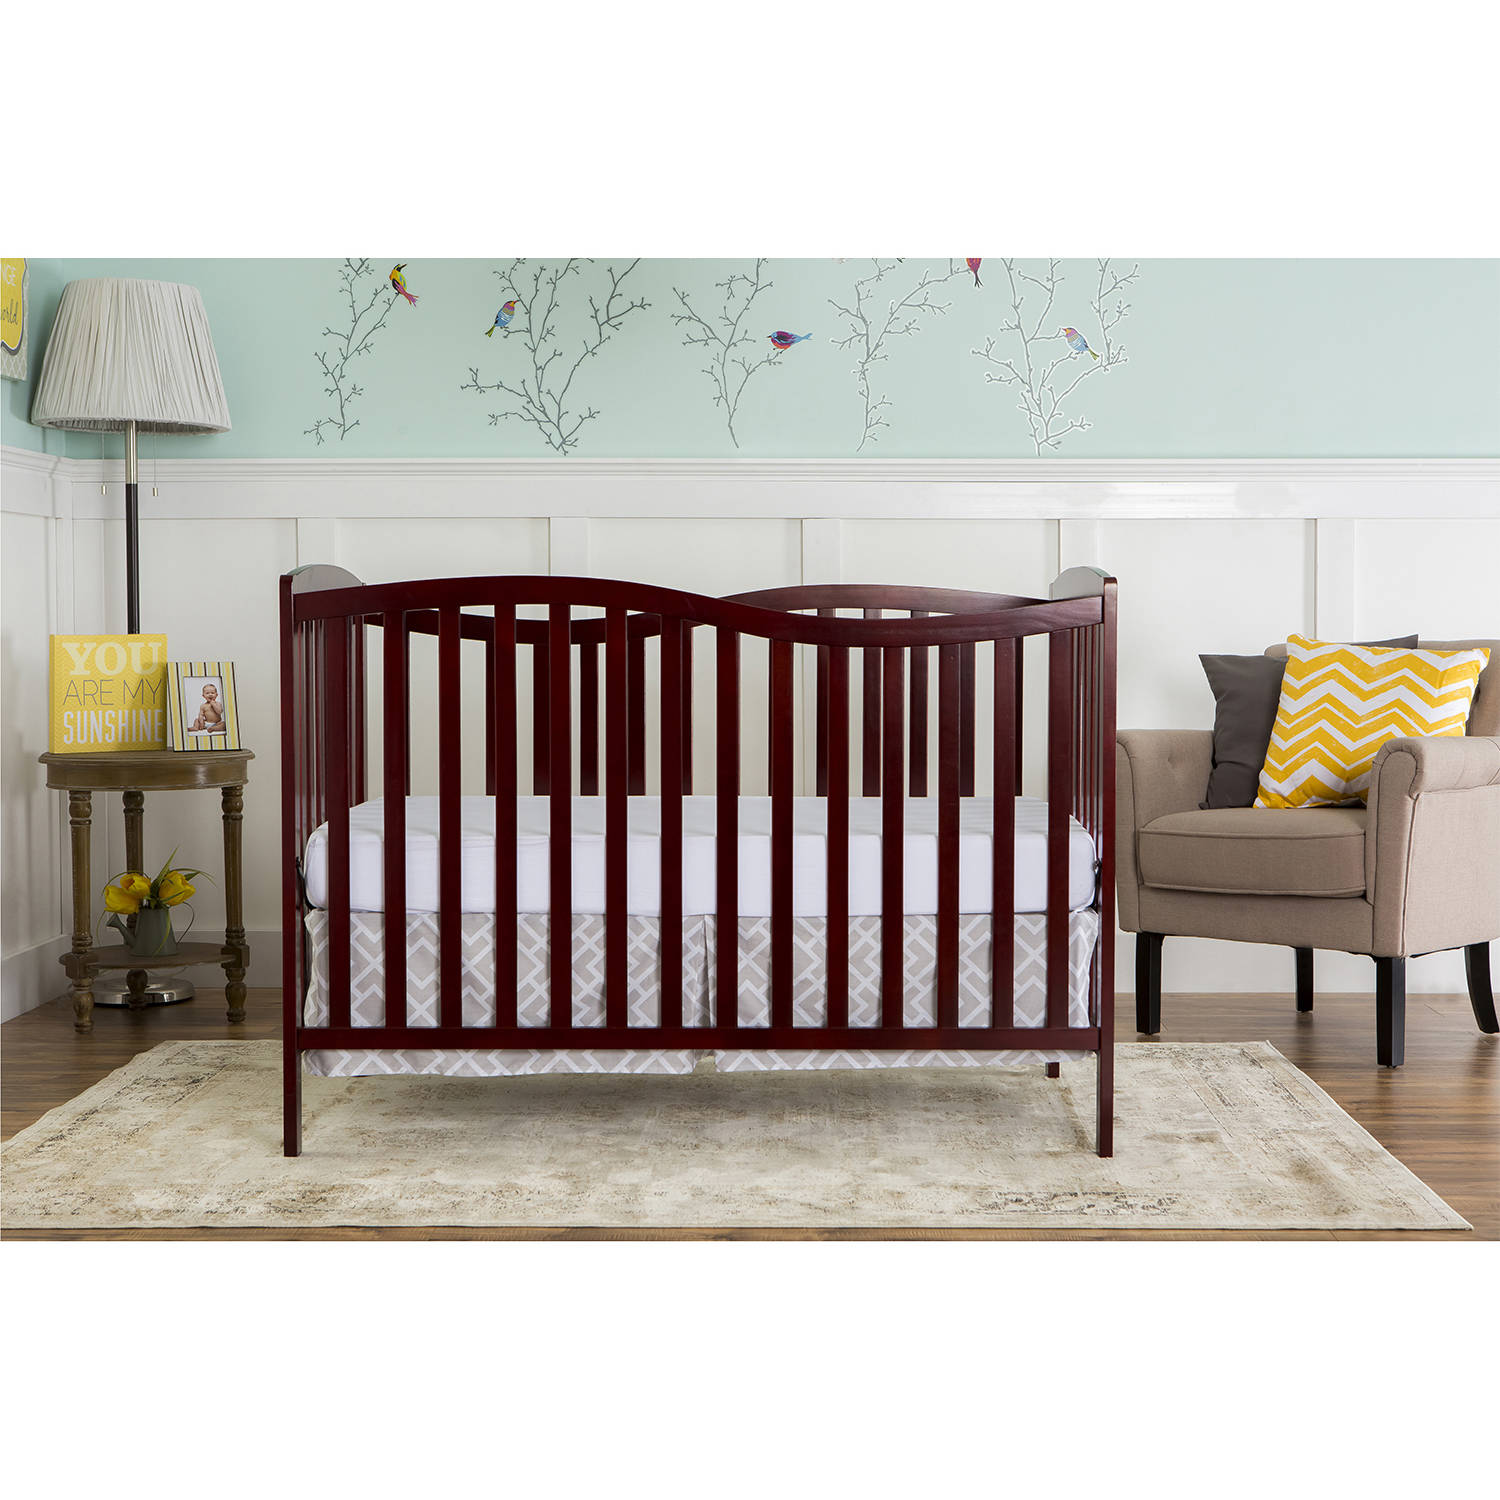 Dream On Me Chelsea 5-in-1 Convertible Crib, Cherry